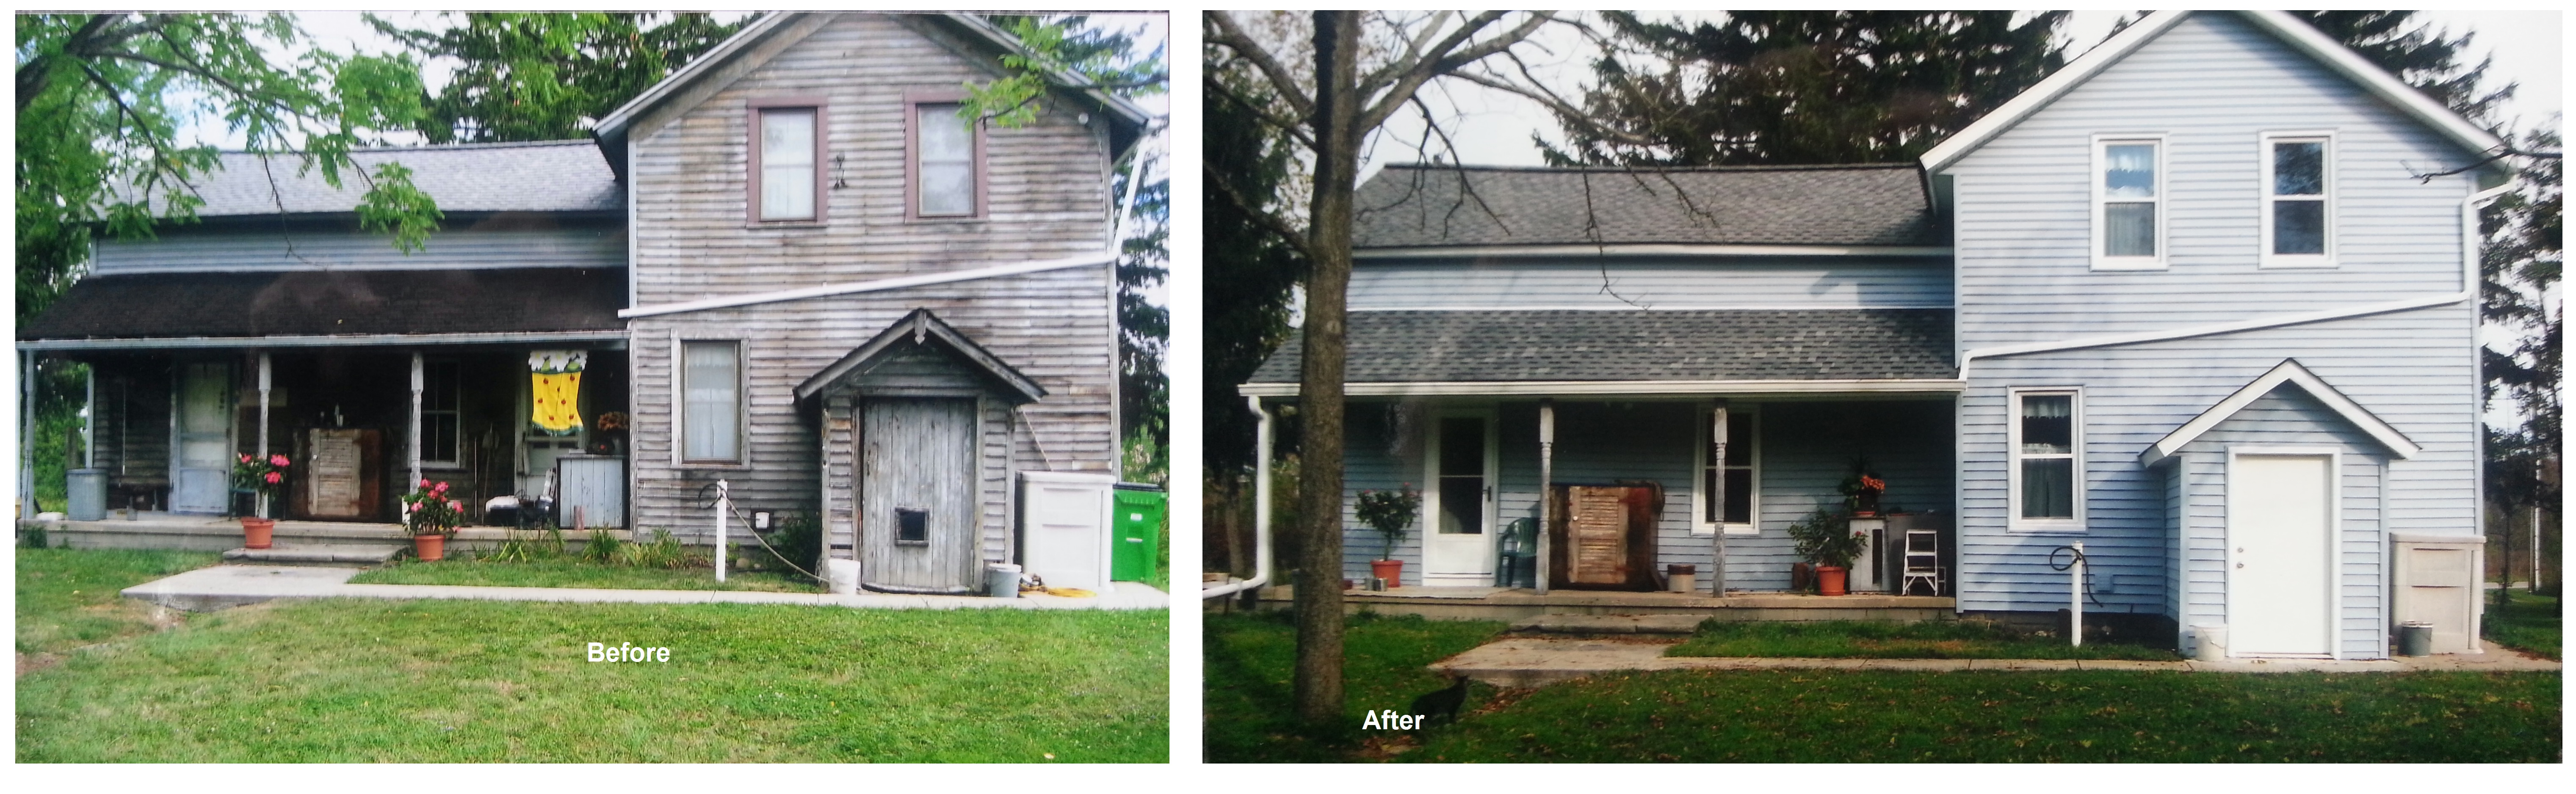 Windows doors siding Twinsburg Ohio before and after